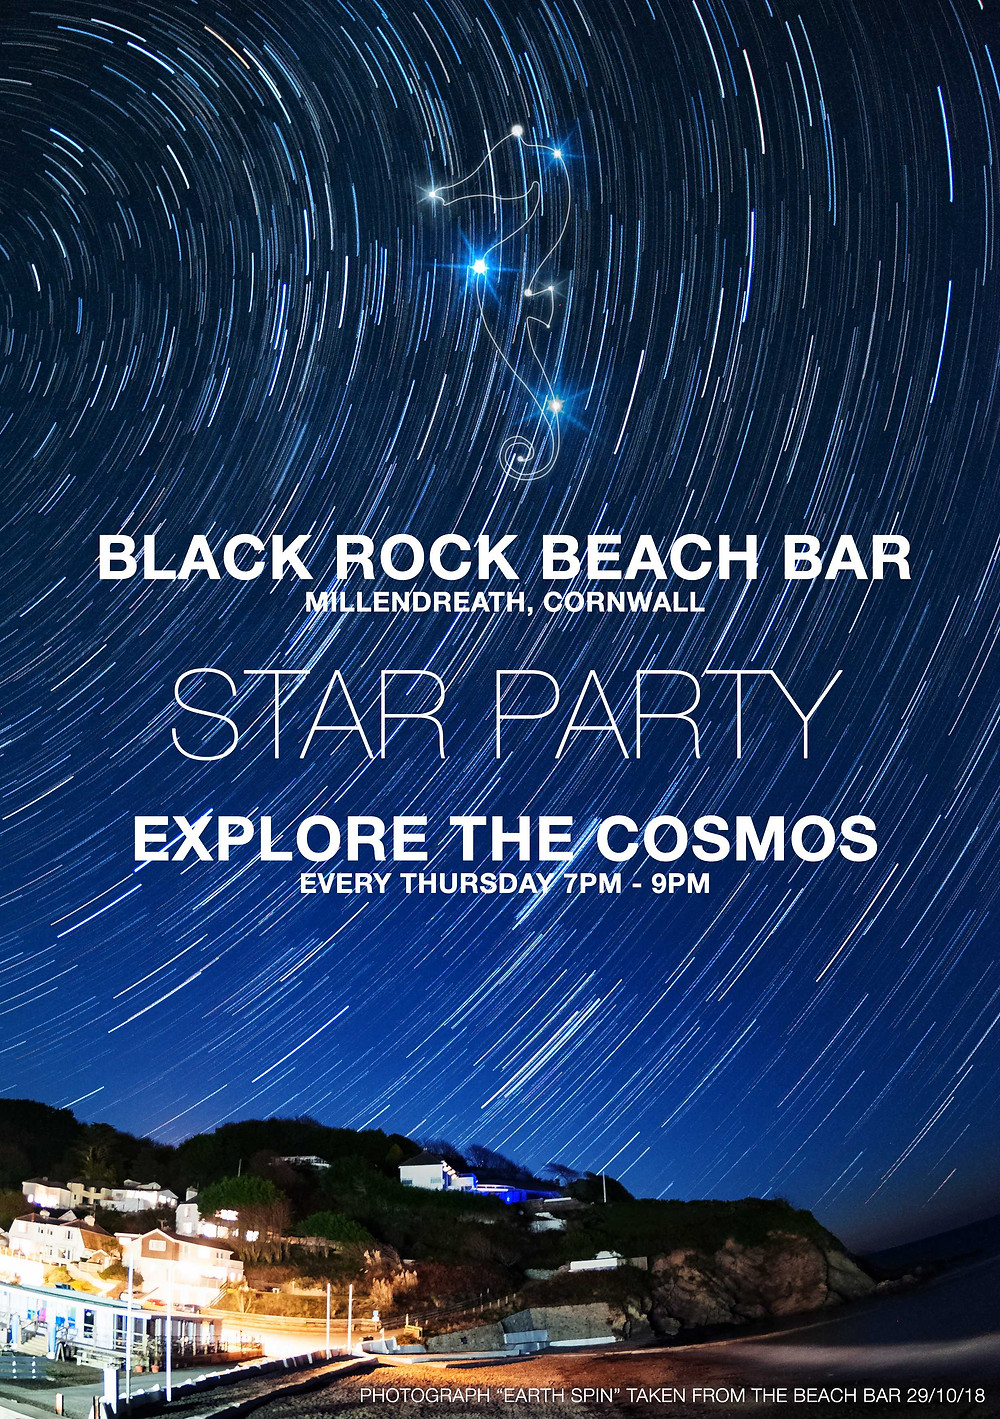 Star Party every Thursday from 9-11pm